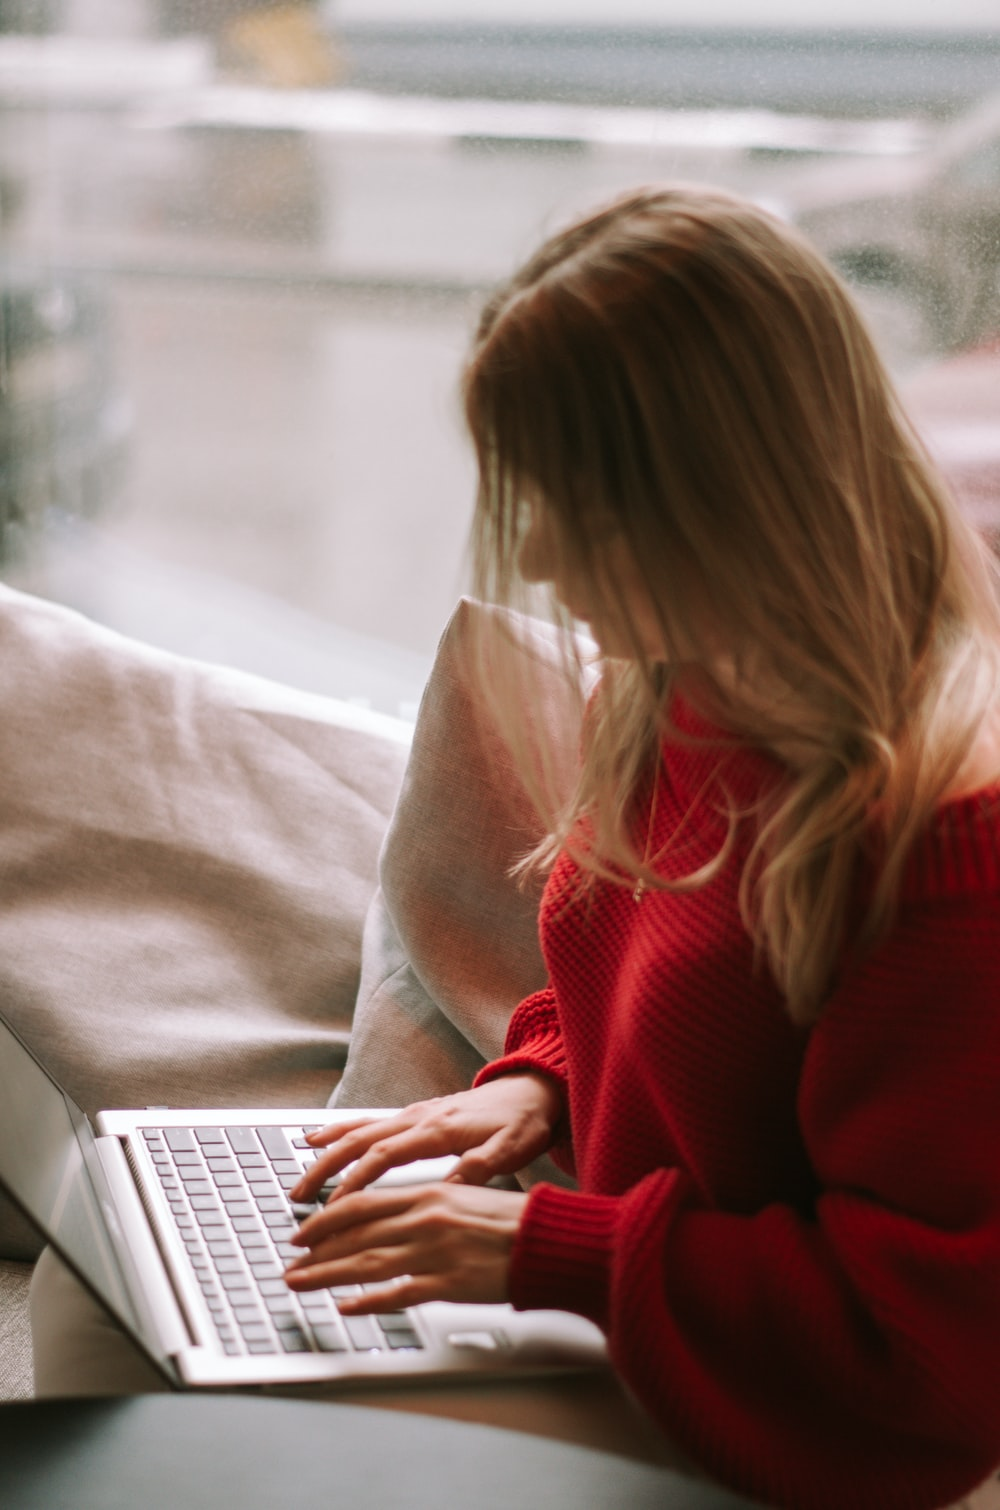 woman in red sweater using macbook air